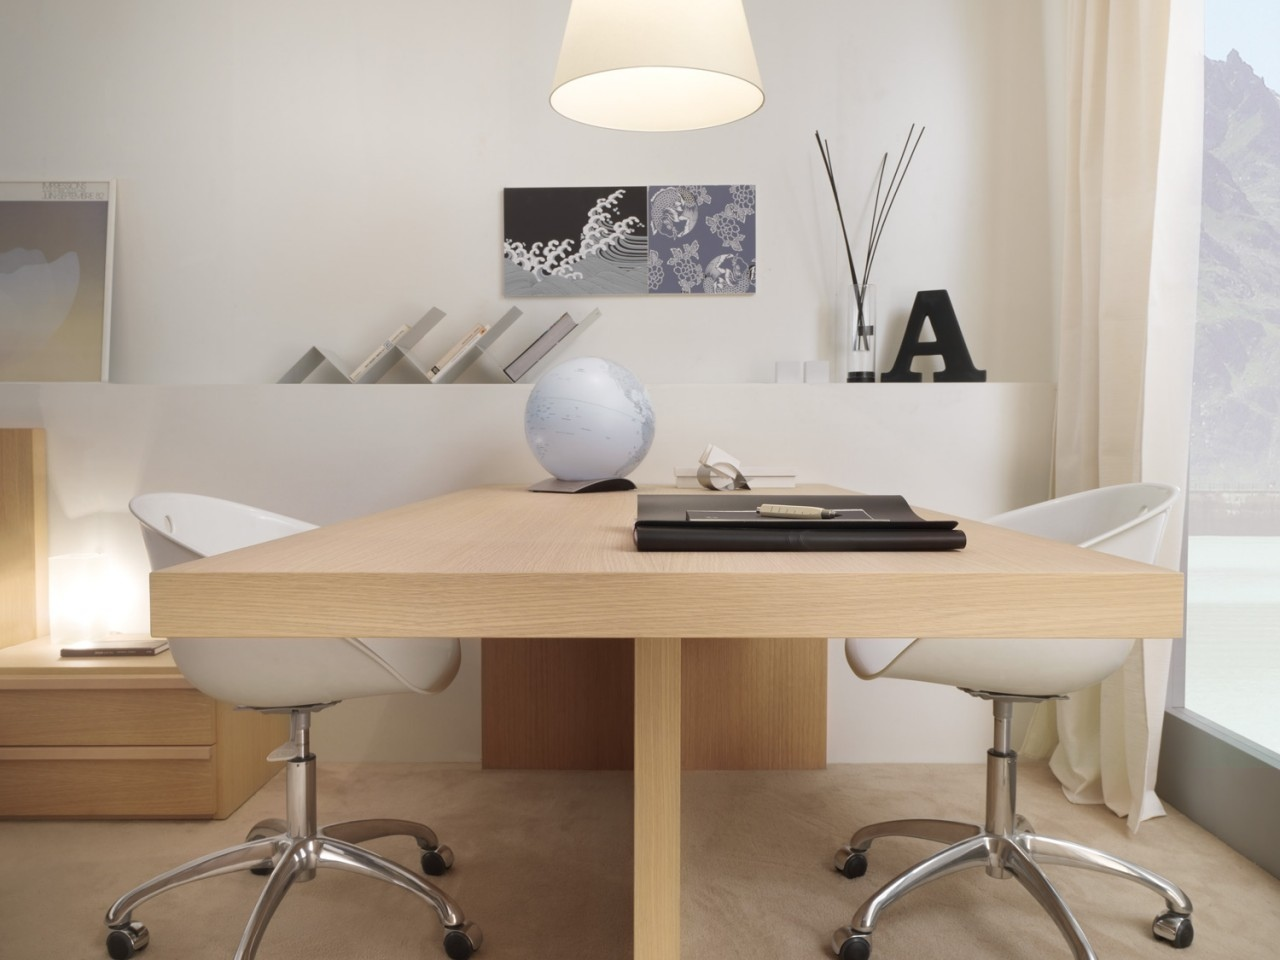 Simple Minimalist Two Sided Desk In No Finishing Stylish White Movable Chairs Permanent Bench For Book